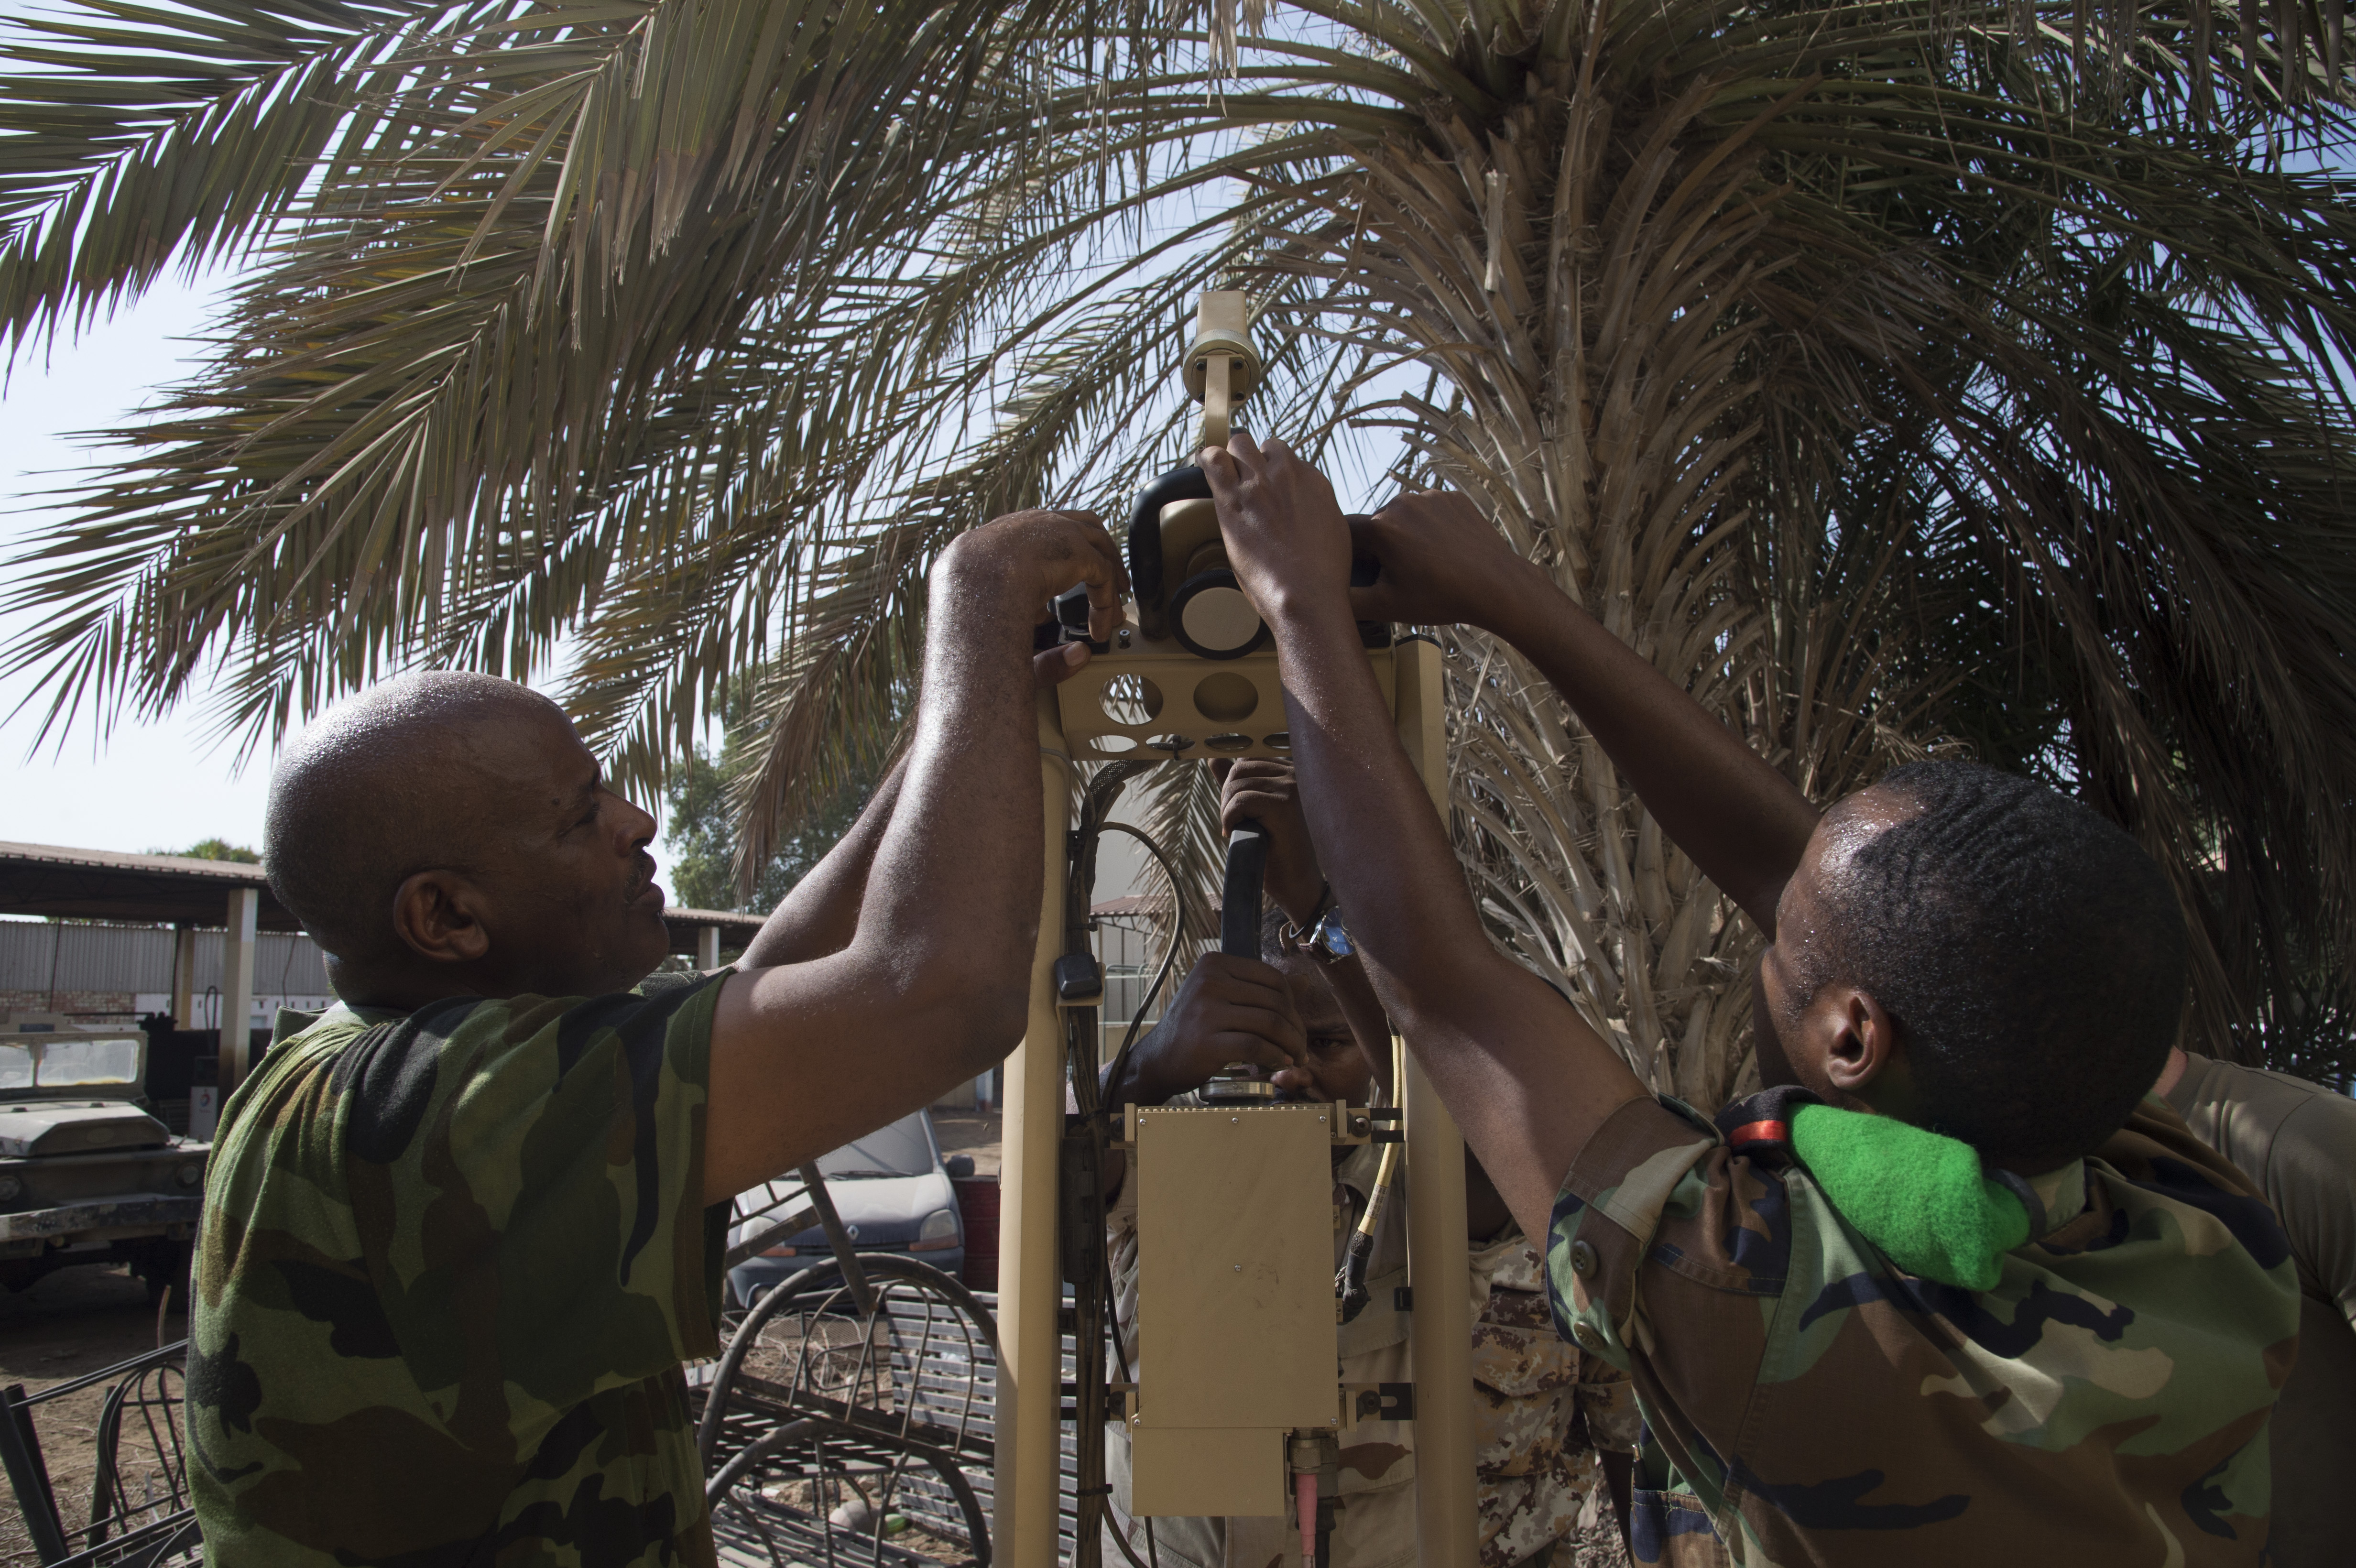 Djibouti Armed Forces (FAD) service members set up an Africa Data Sharing Network (ADSN) satellite during training validation Sept. 28, 2016, at FAD Headquarters in Djibouti. While conducting the best practices training, the U.S. Army, assigned to Combined Joint Task-Horn of Africa, also held an ADSN validation with the FAD soldiers to prepare them to deploy to Somalia.  The ADSN provides network and Voice over Internet Protocol capabilities between the several African countries participating in the Africa Union Mission in Somalia. (U.S. Air Force photo by Staff Sgt. Eric Summers Jr.)